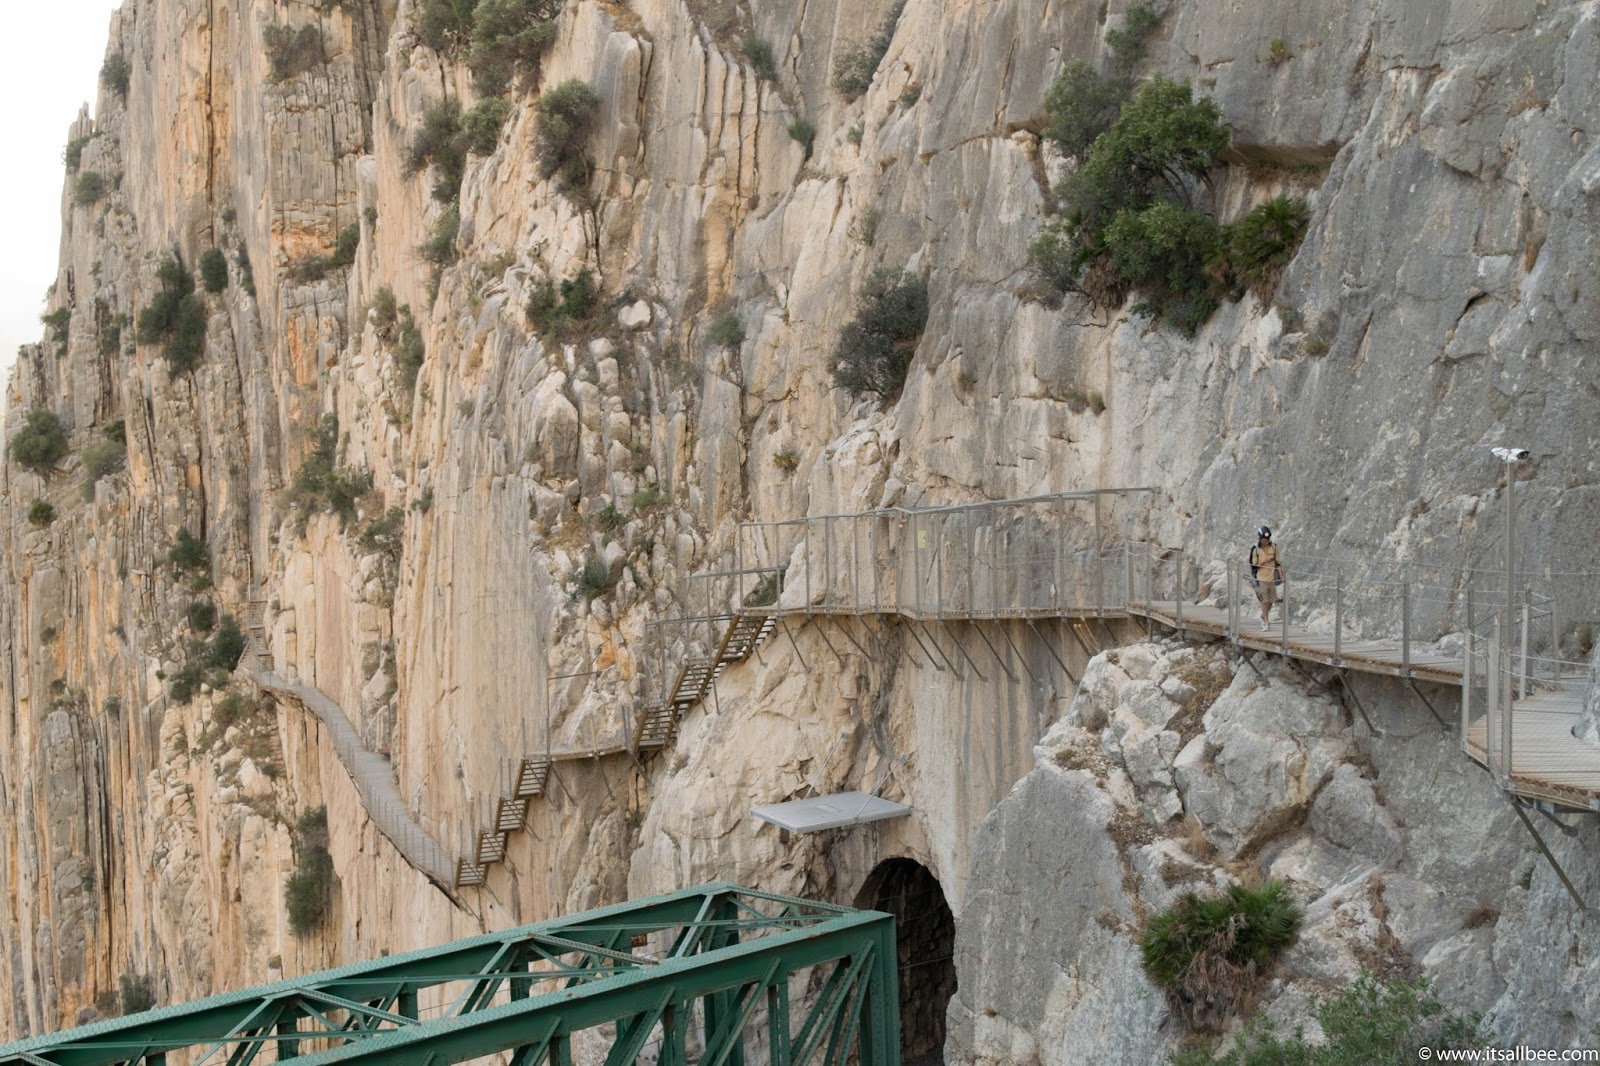 El Chorro, Spain - El Caminito Del Rey | Hiking Spain's Most Dangerous Hiking Trail